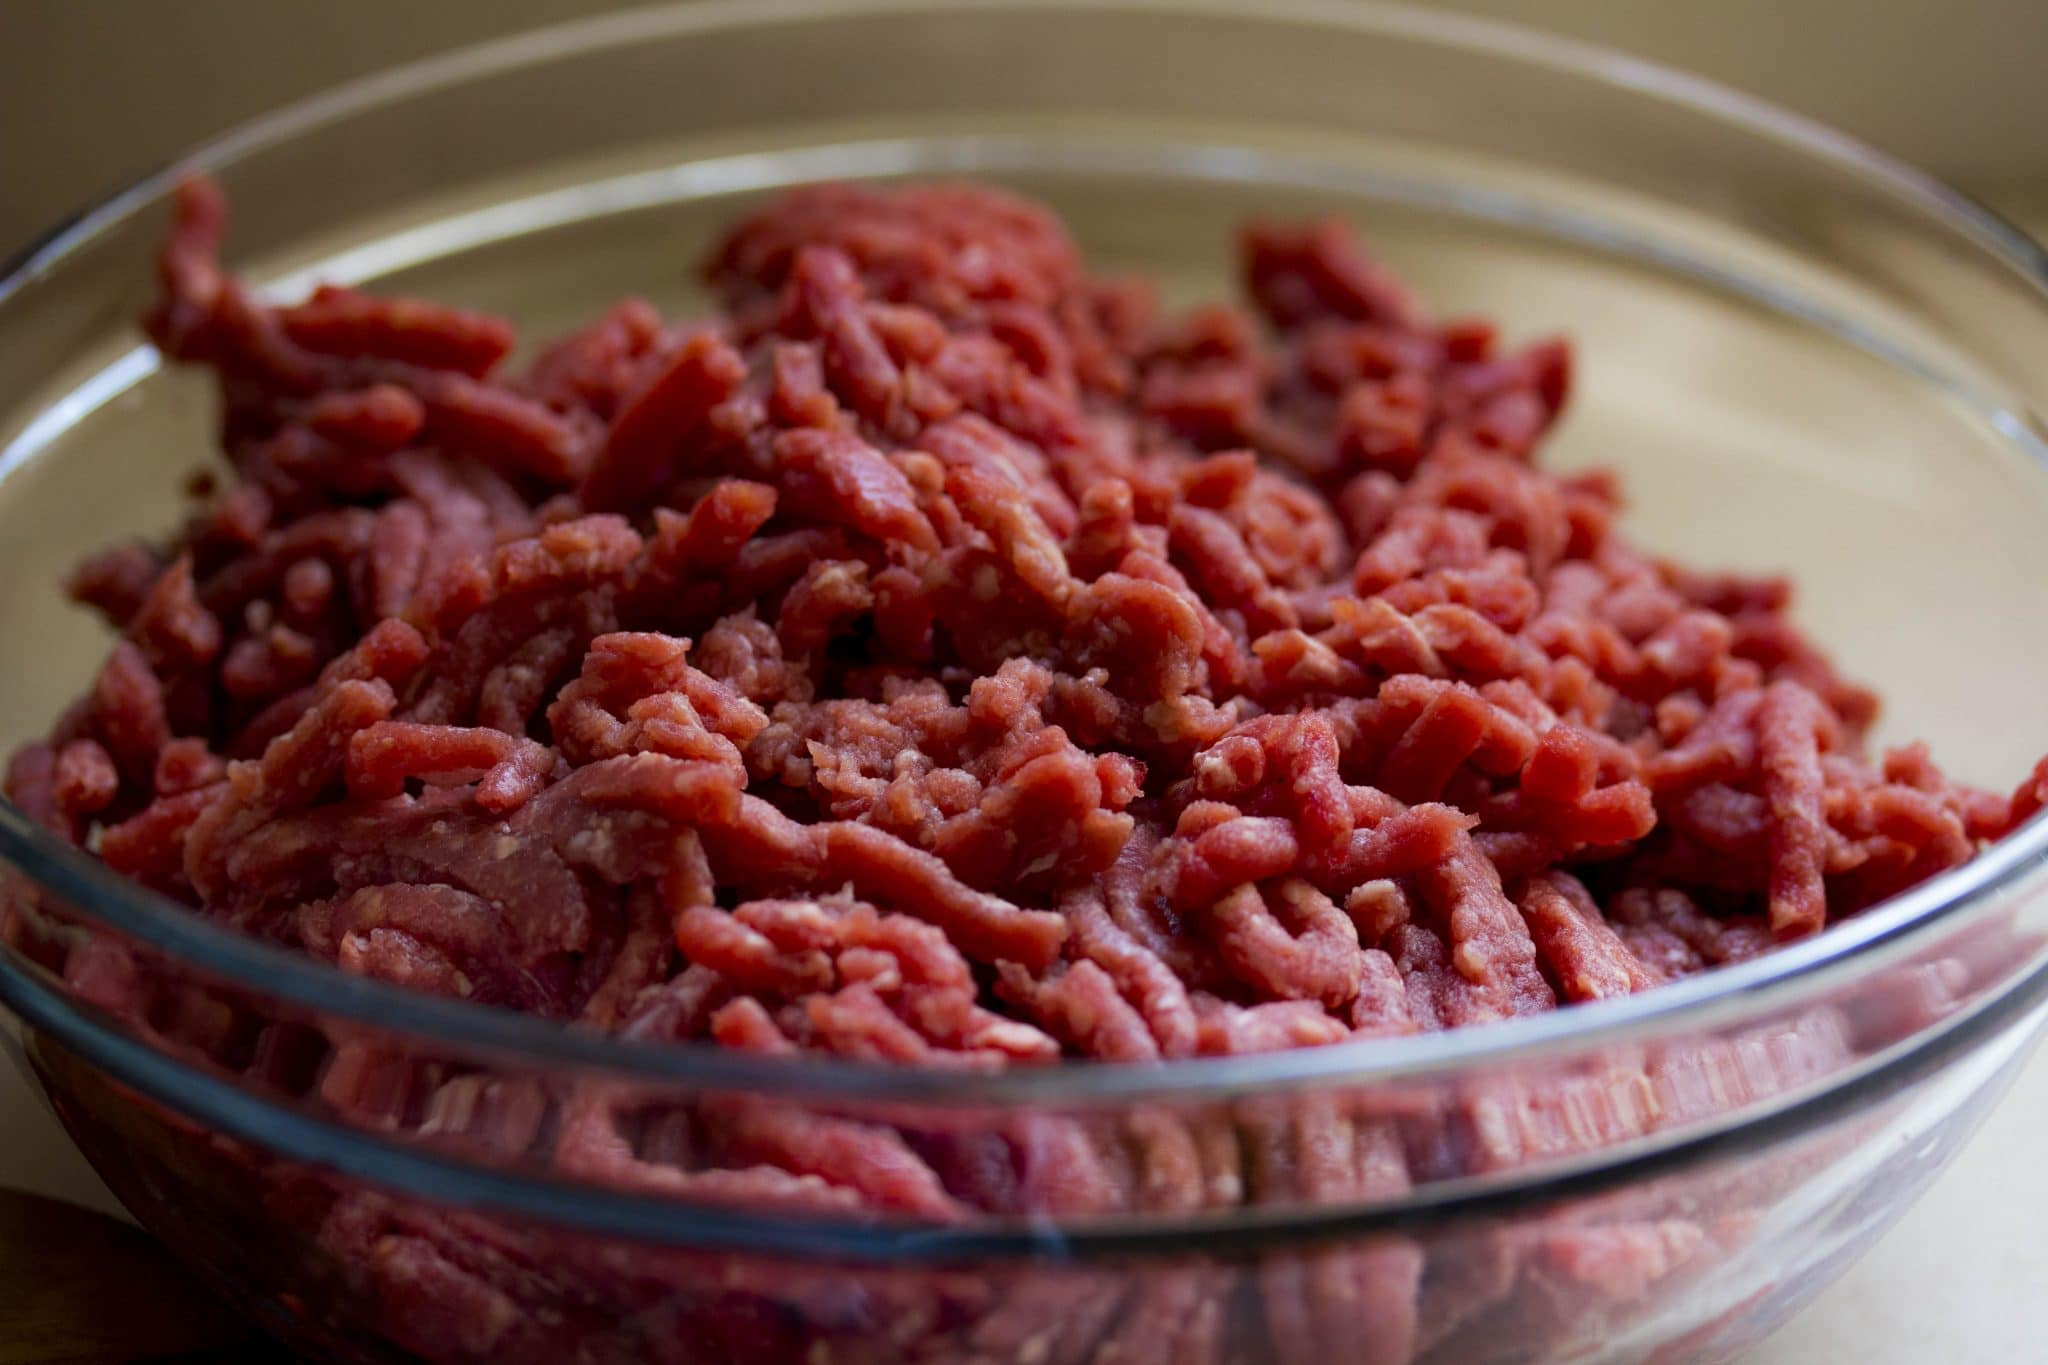 recipes with ground beef, ground beef easy recipes